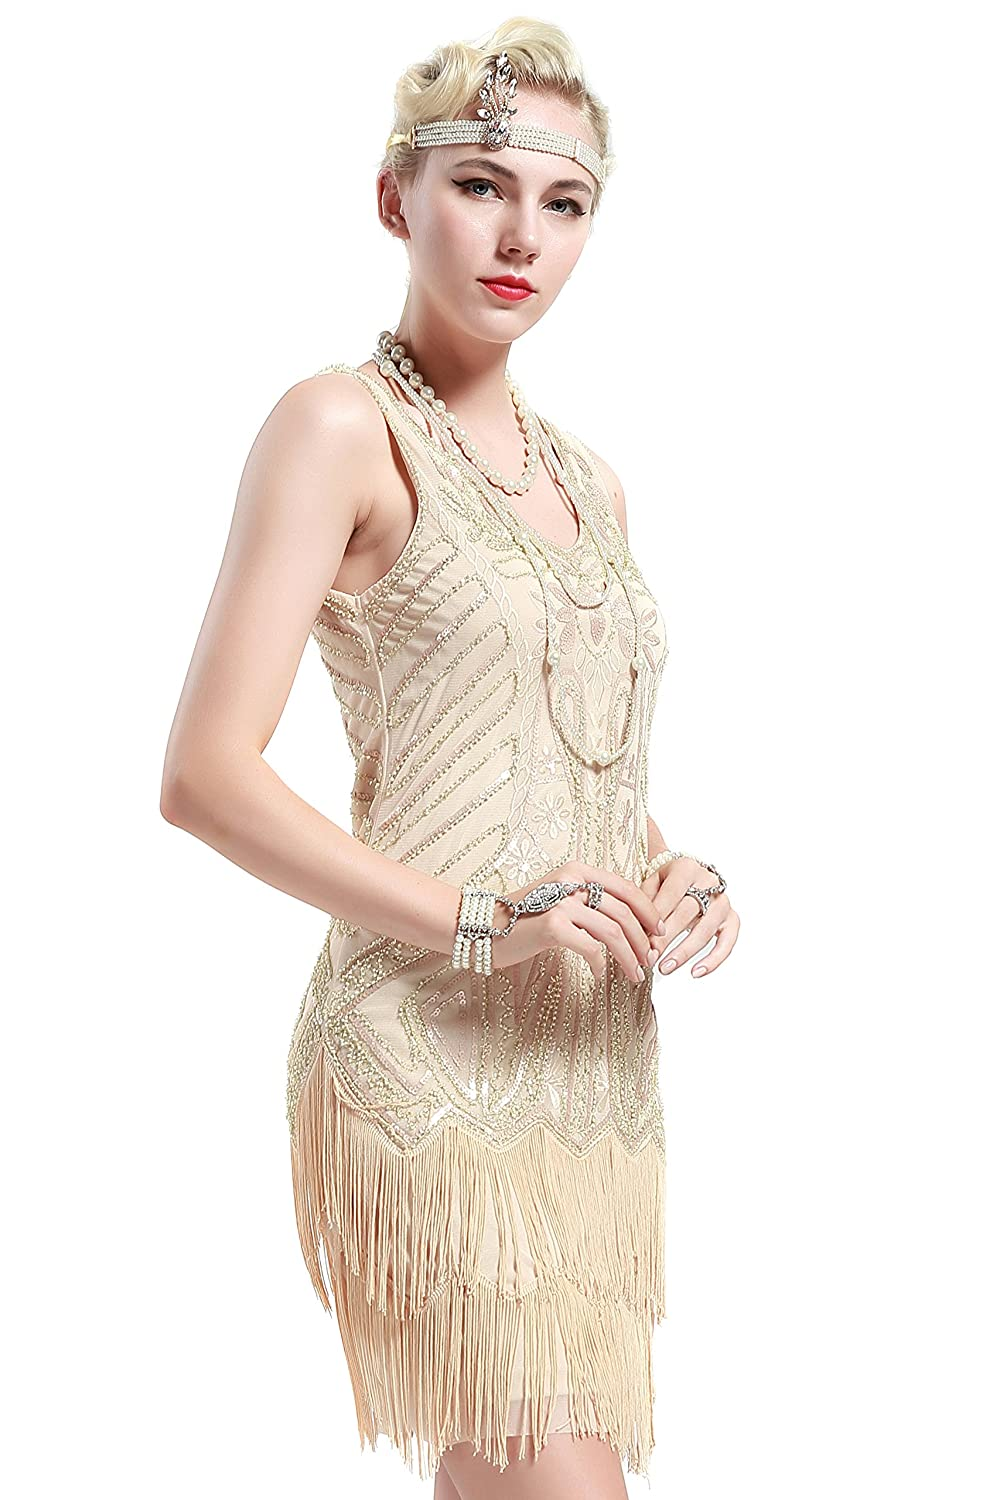 c06c972eca6 ... Great Gatsby Dress.  28.99 Amazon · Roaring 20s Costumes- Flapper  Costumes